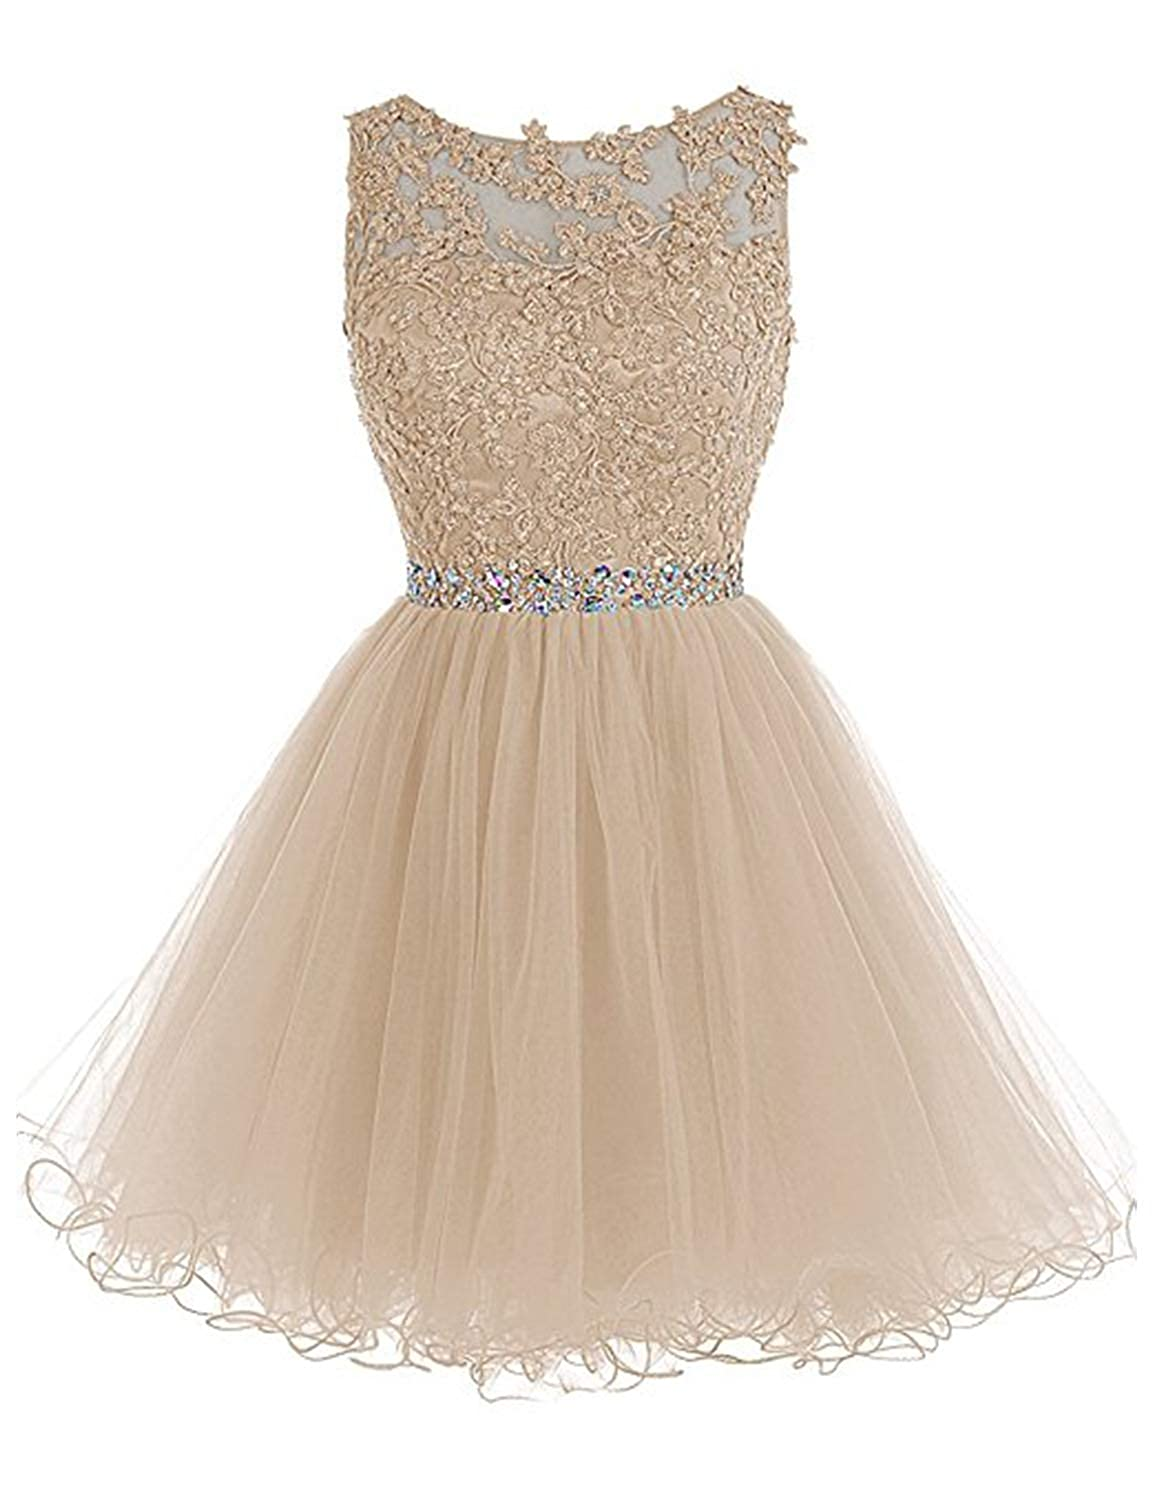 0 Champagne Vimans Women's Short Tulle Homecoming Dresses 2018 Knee Length Lace Prom Gowns Dress448